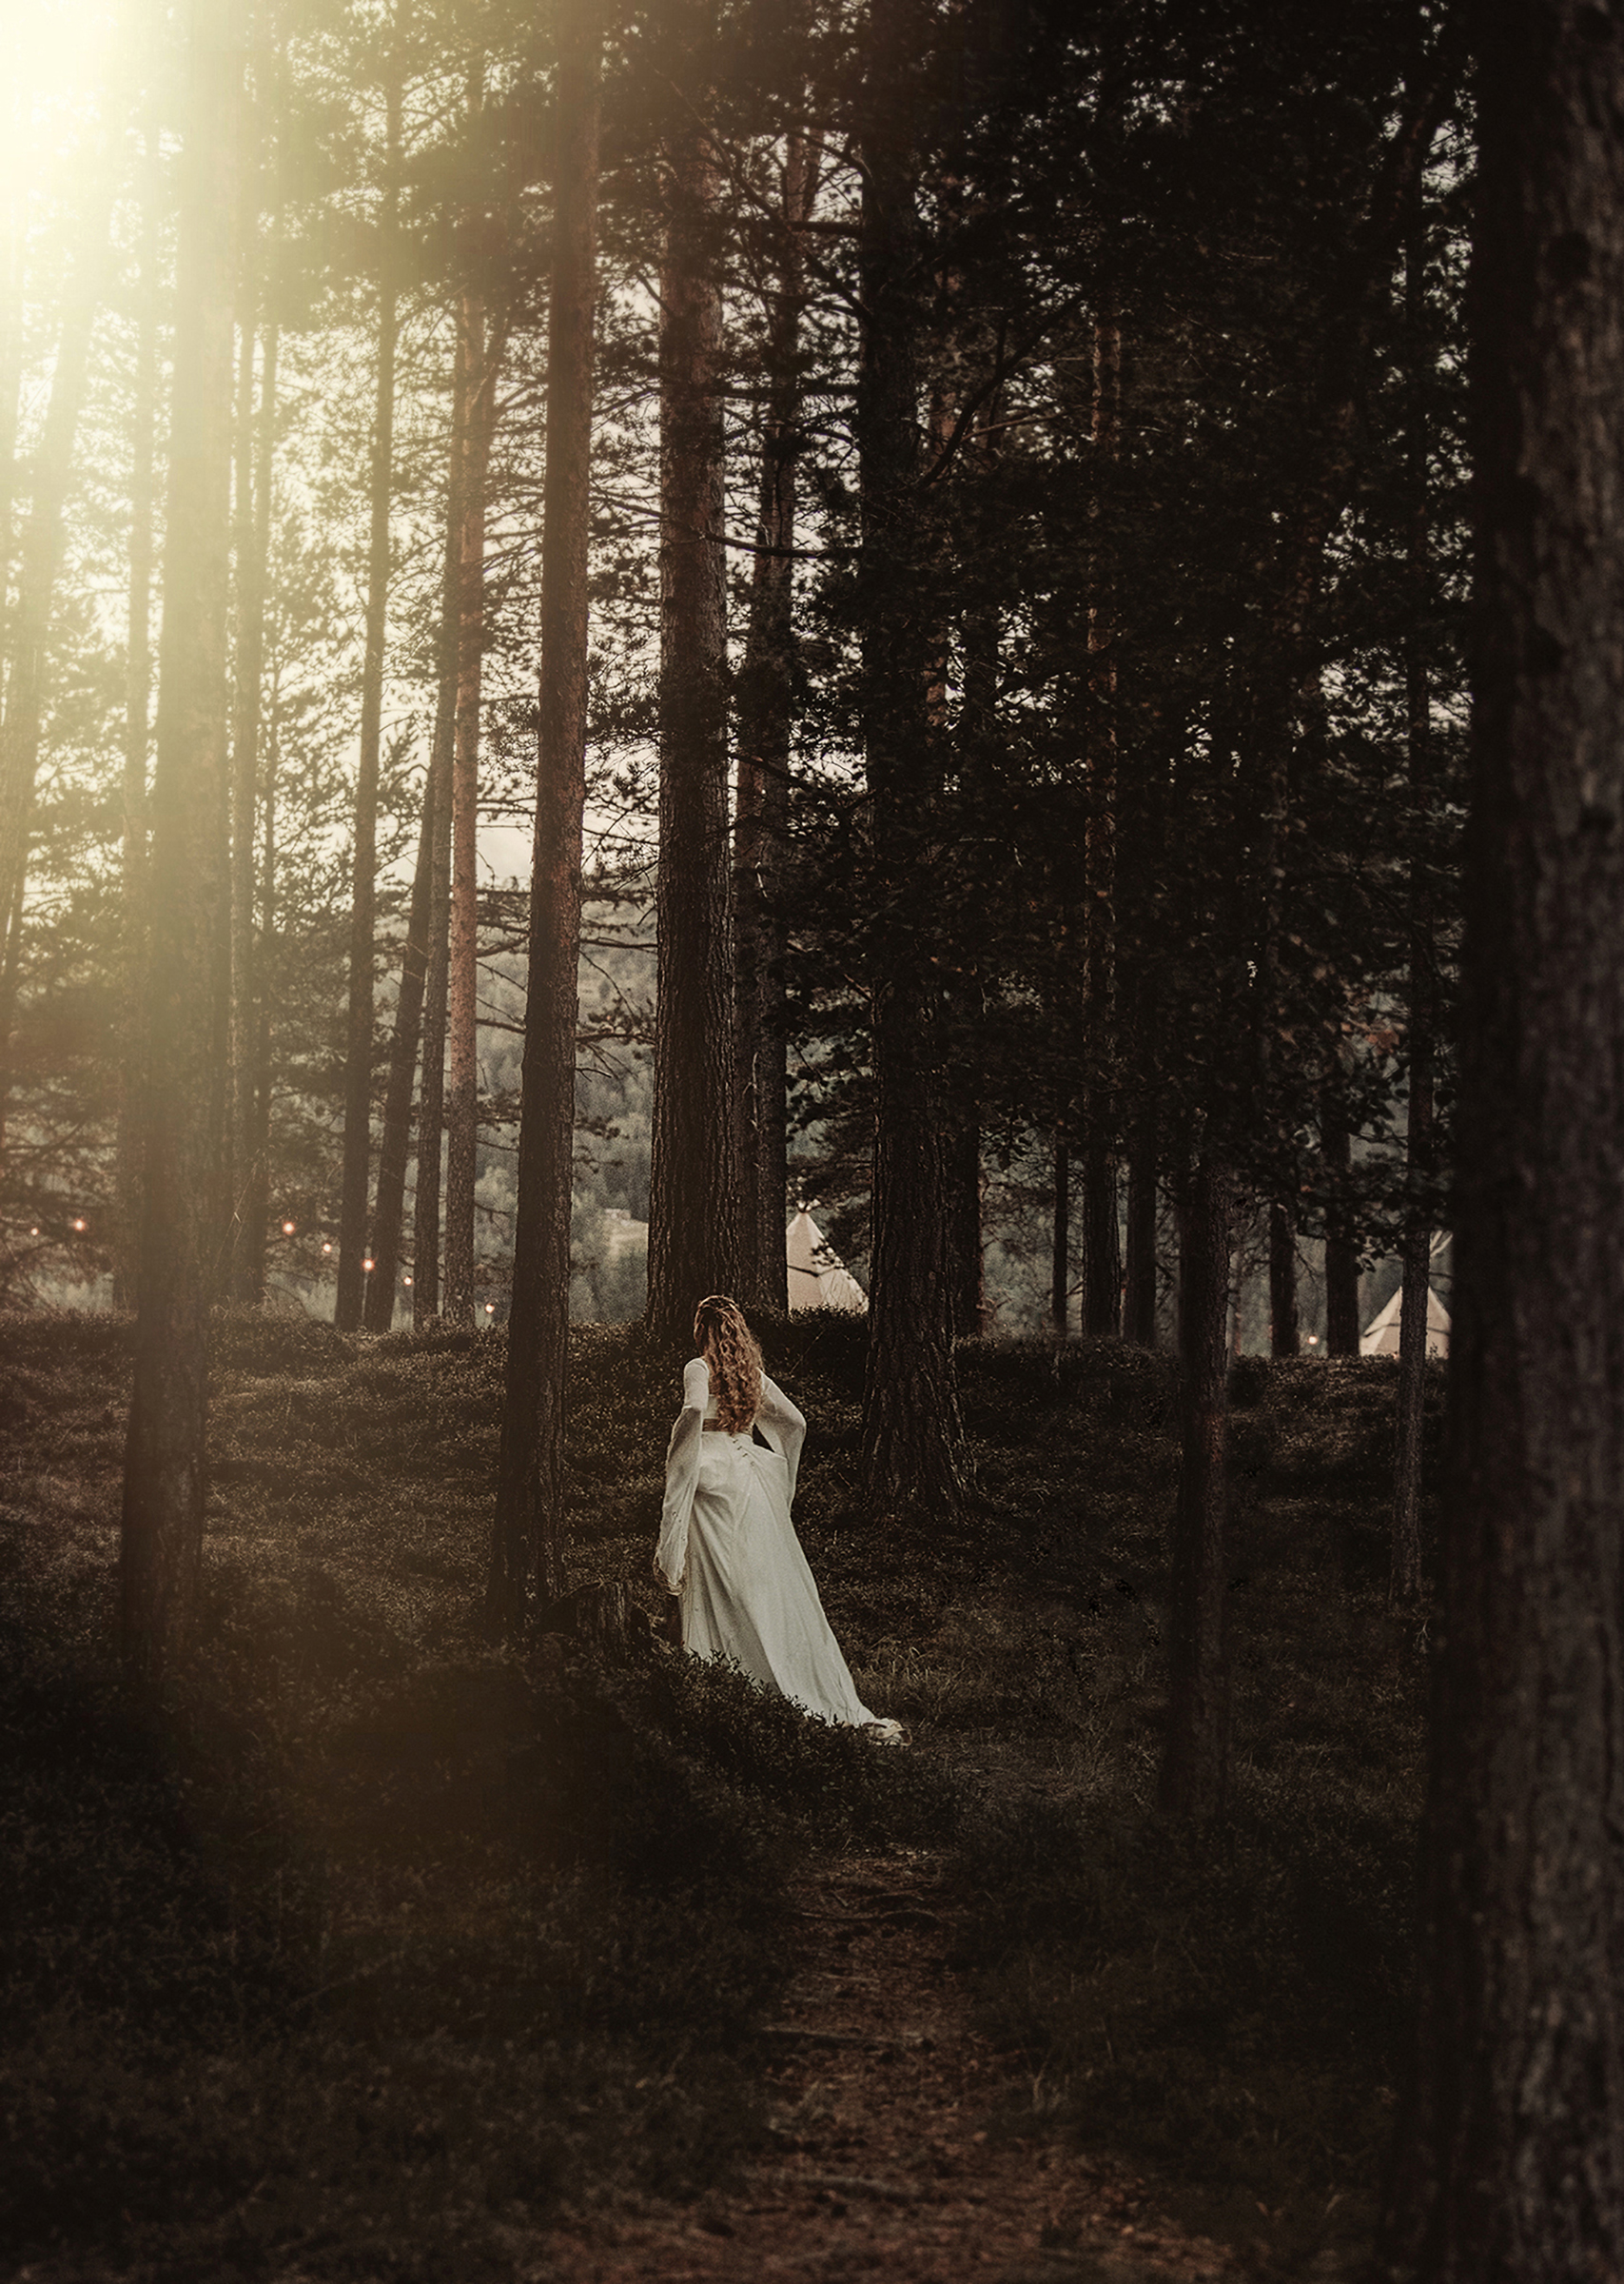 Bride walking in forest - photo by Frøydis